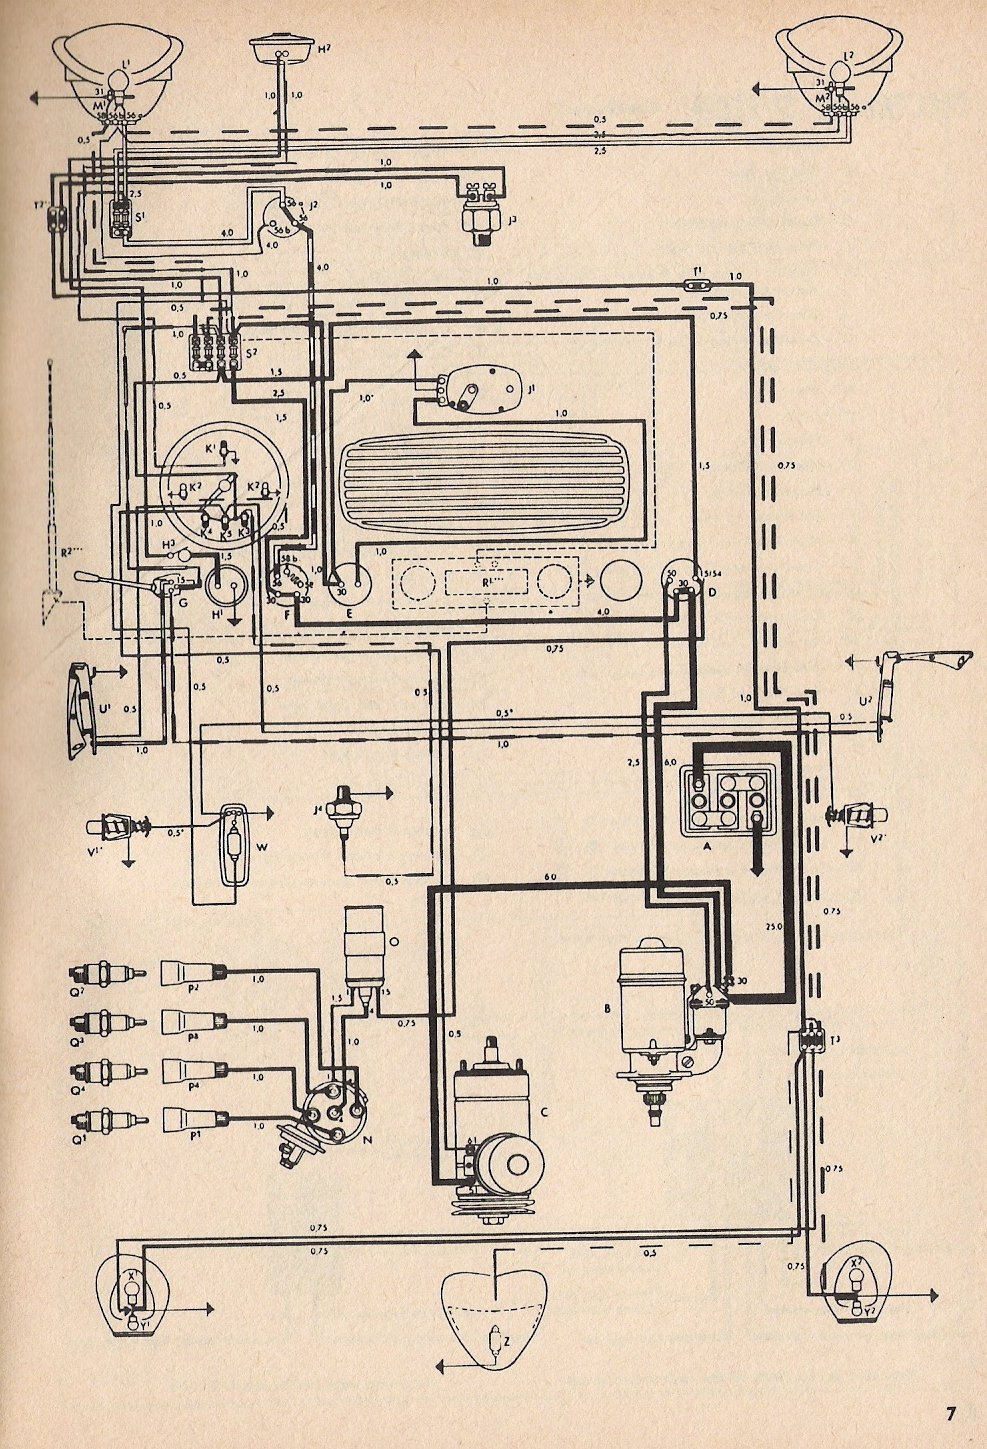 72 Charger Wiring Diagram Library 1967 Dodge Coronet Neutral Safety Switch